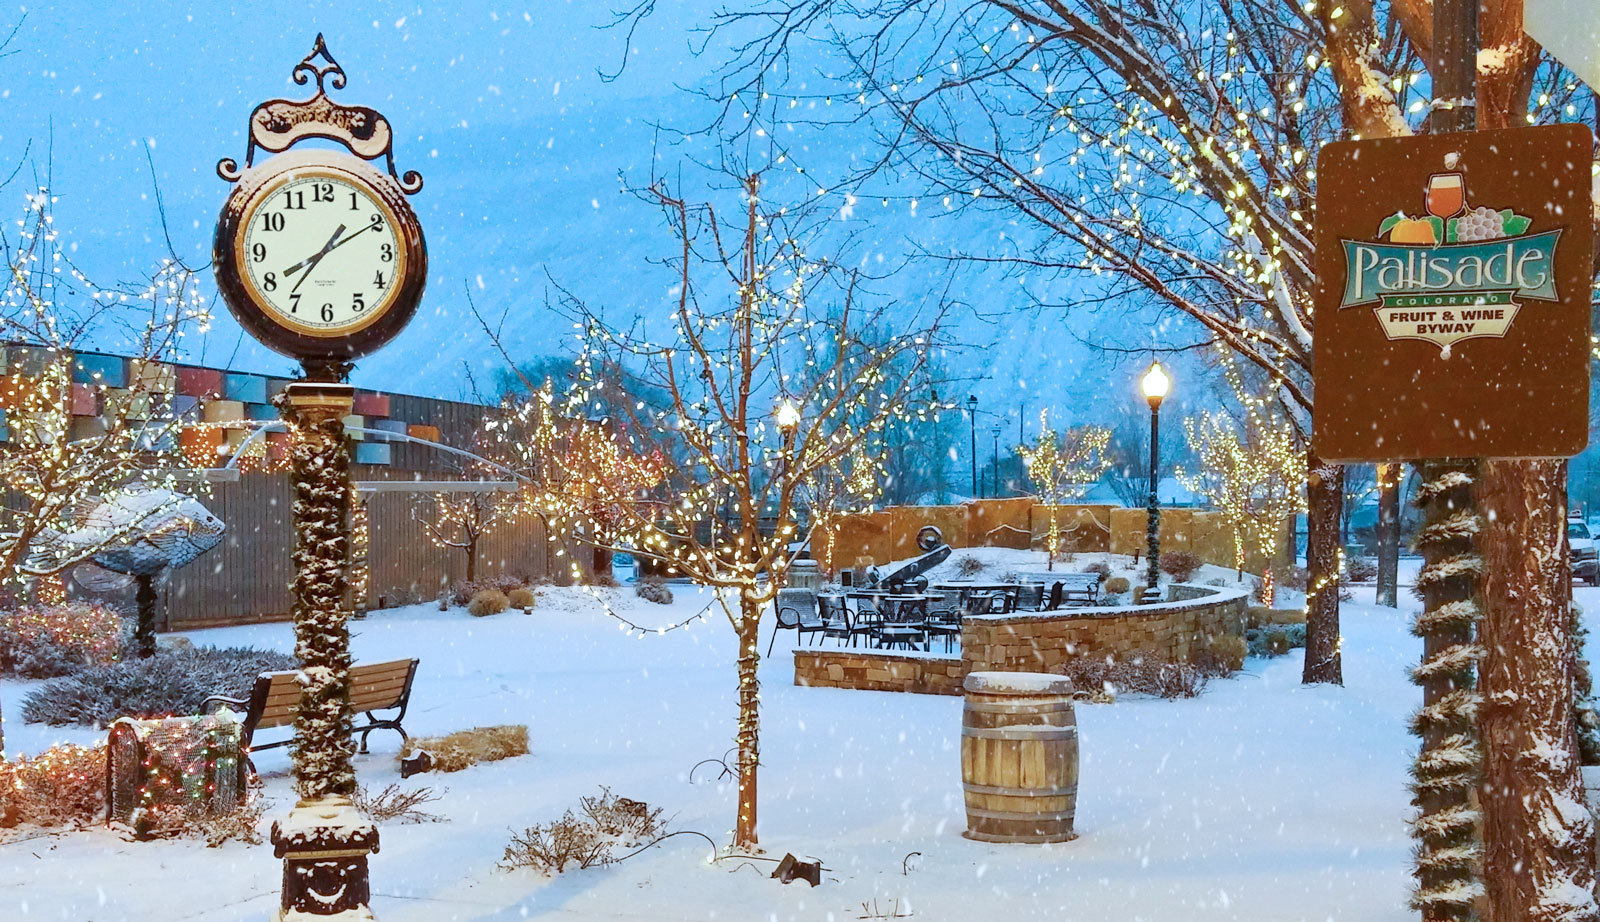 Christmas In Colorado.Holiday Shopping In Palisade Co Wine Tours And Holiday Events